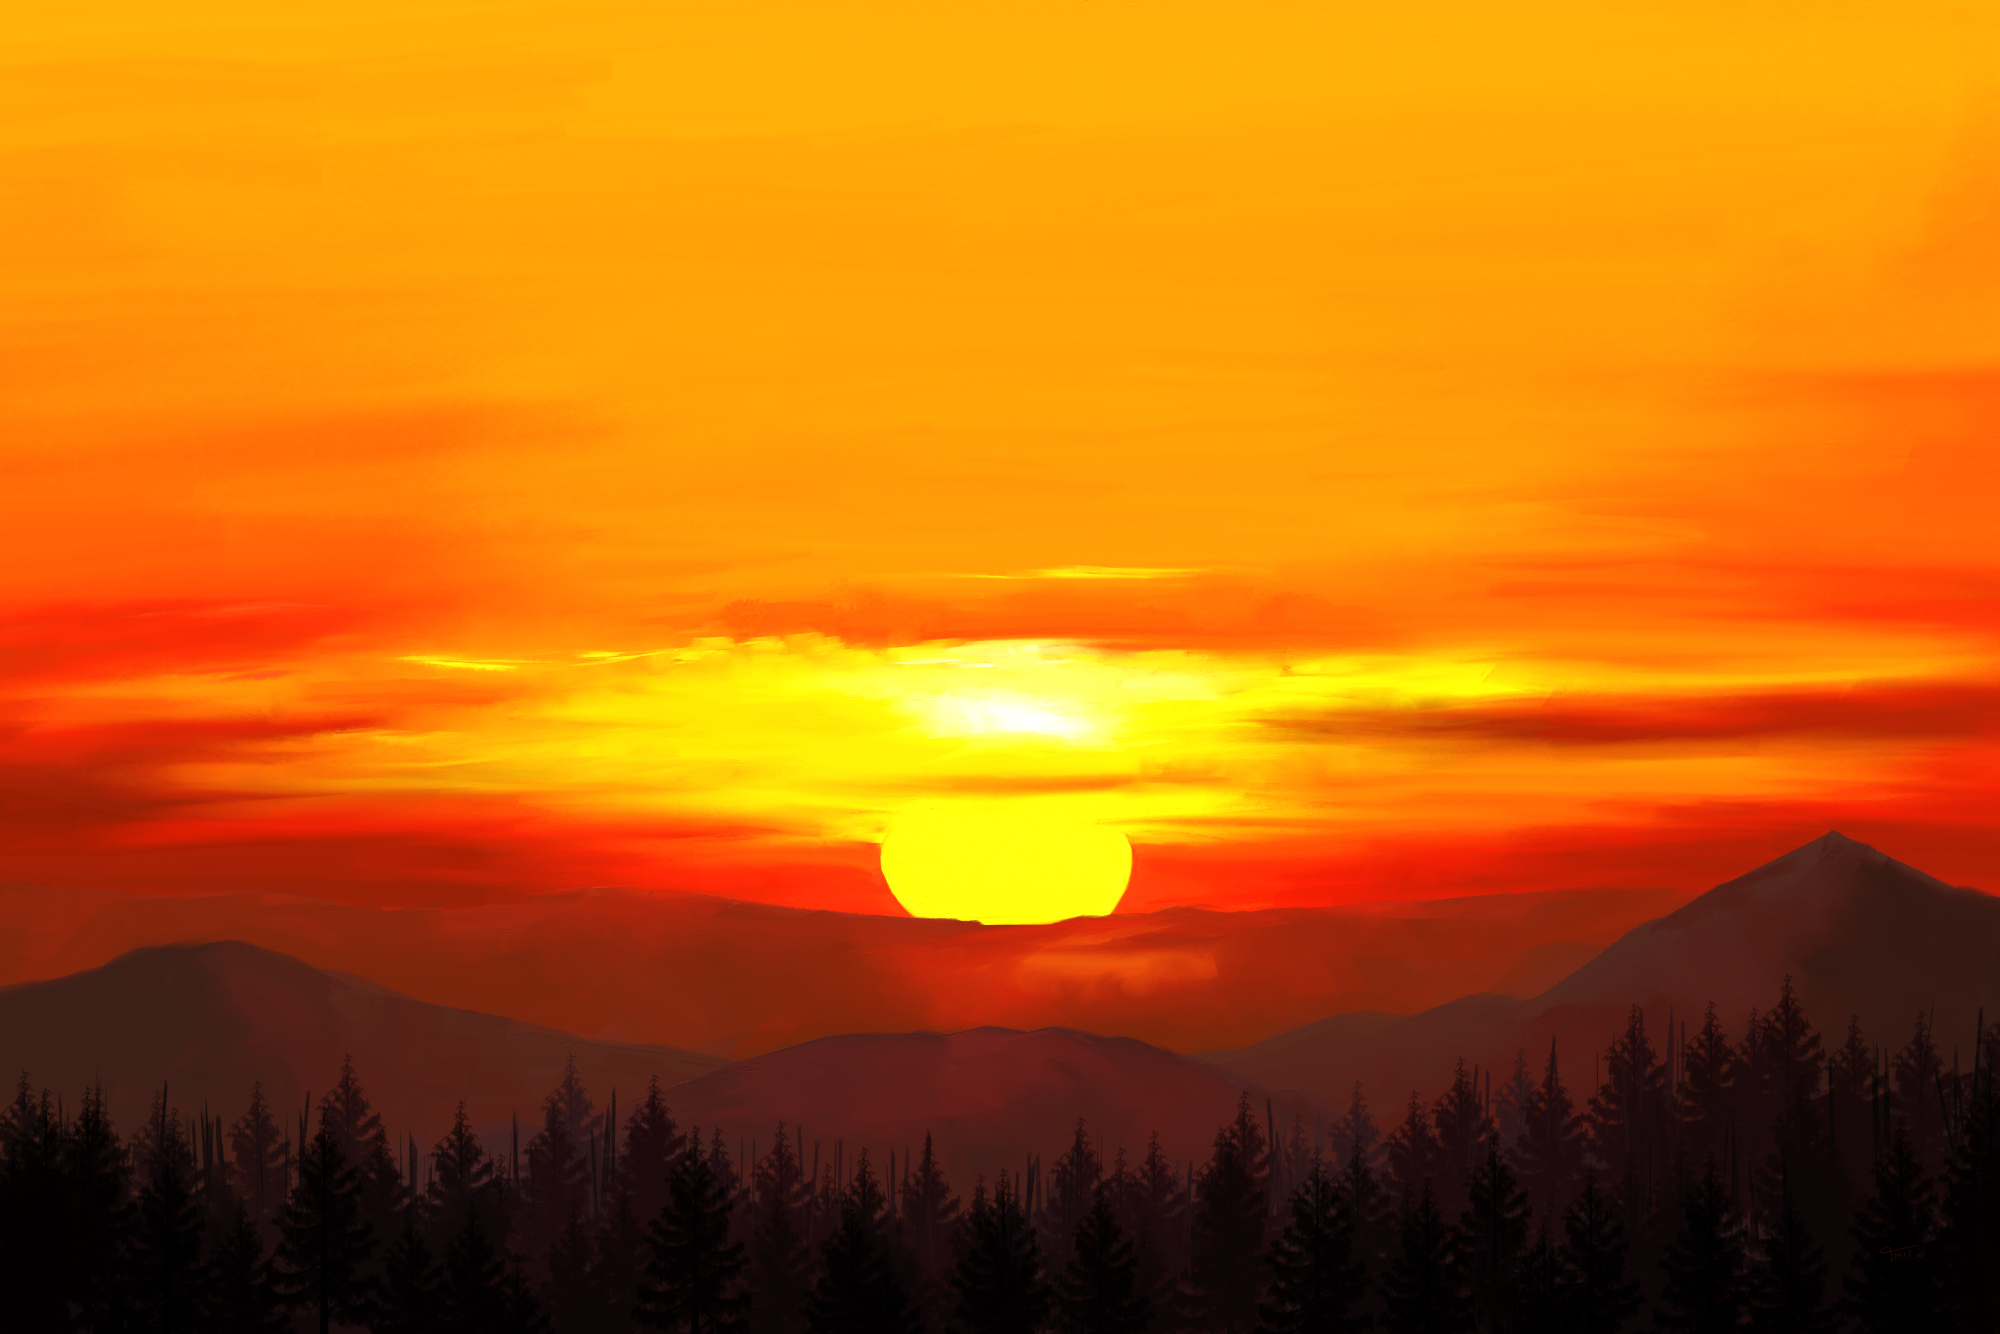 Digital painting of a Sunset in the mountains